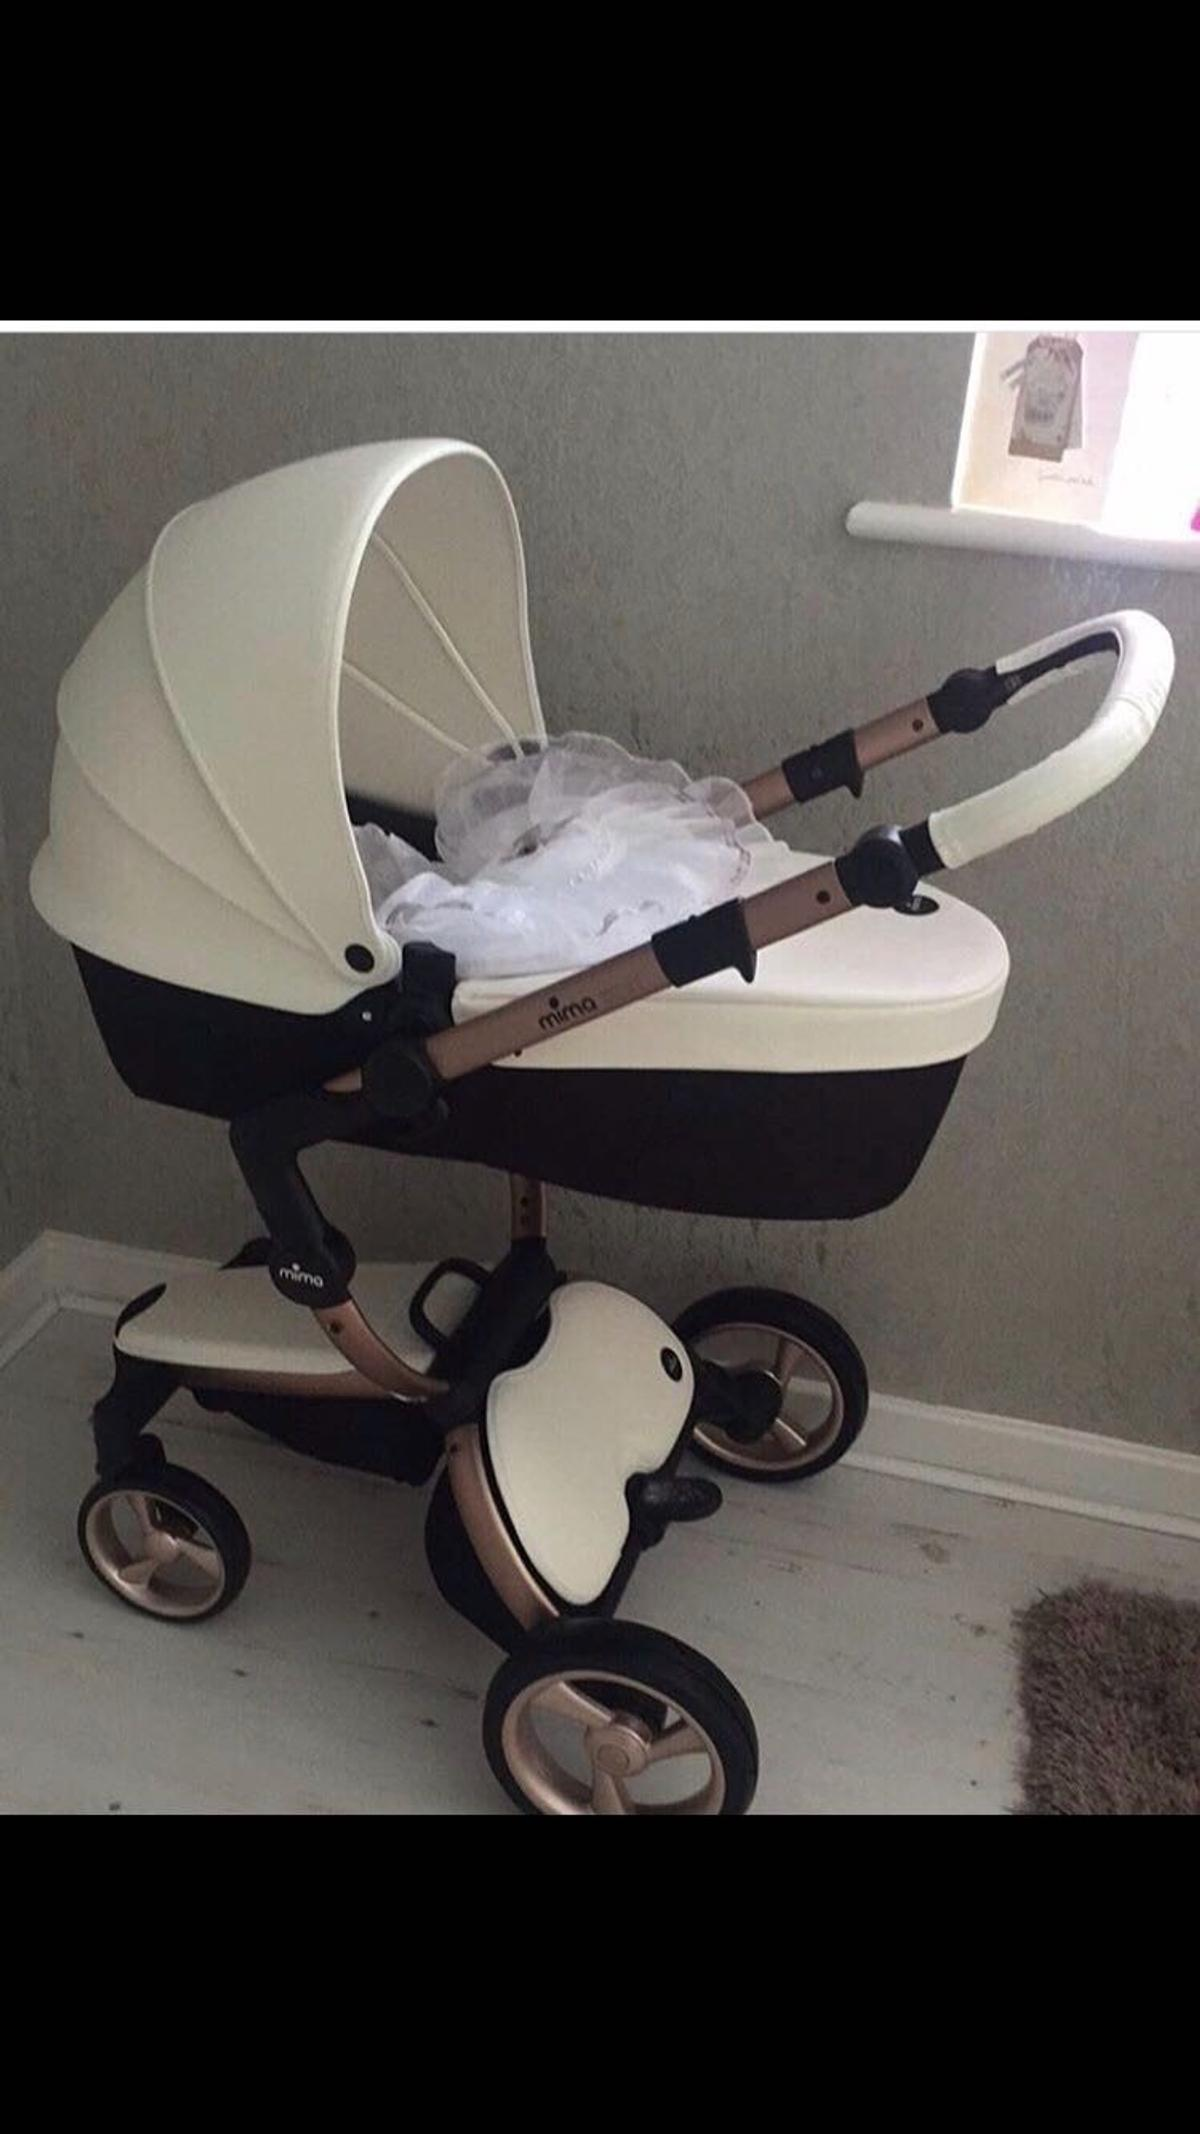 Mima Xari Seat Box 2 Snow-white Mima Xari Snow White Rose Gold Pram In L7 Liverpool For